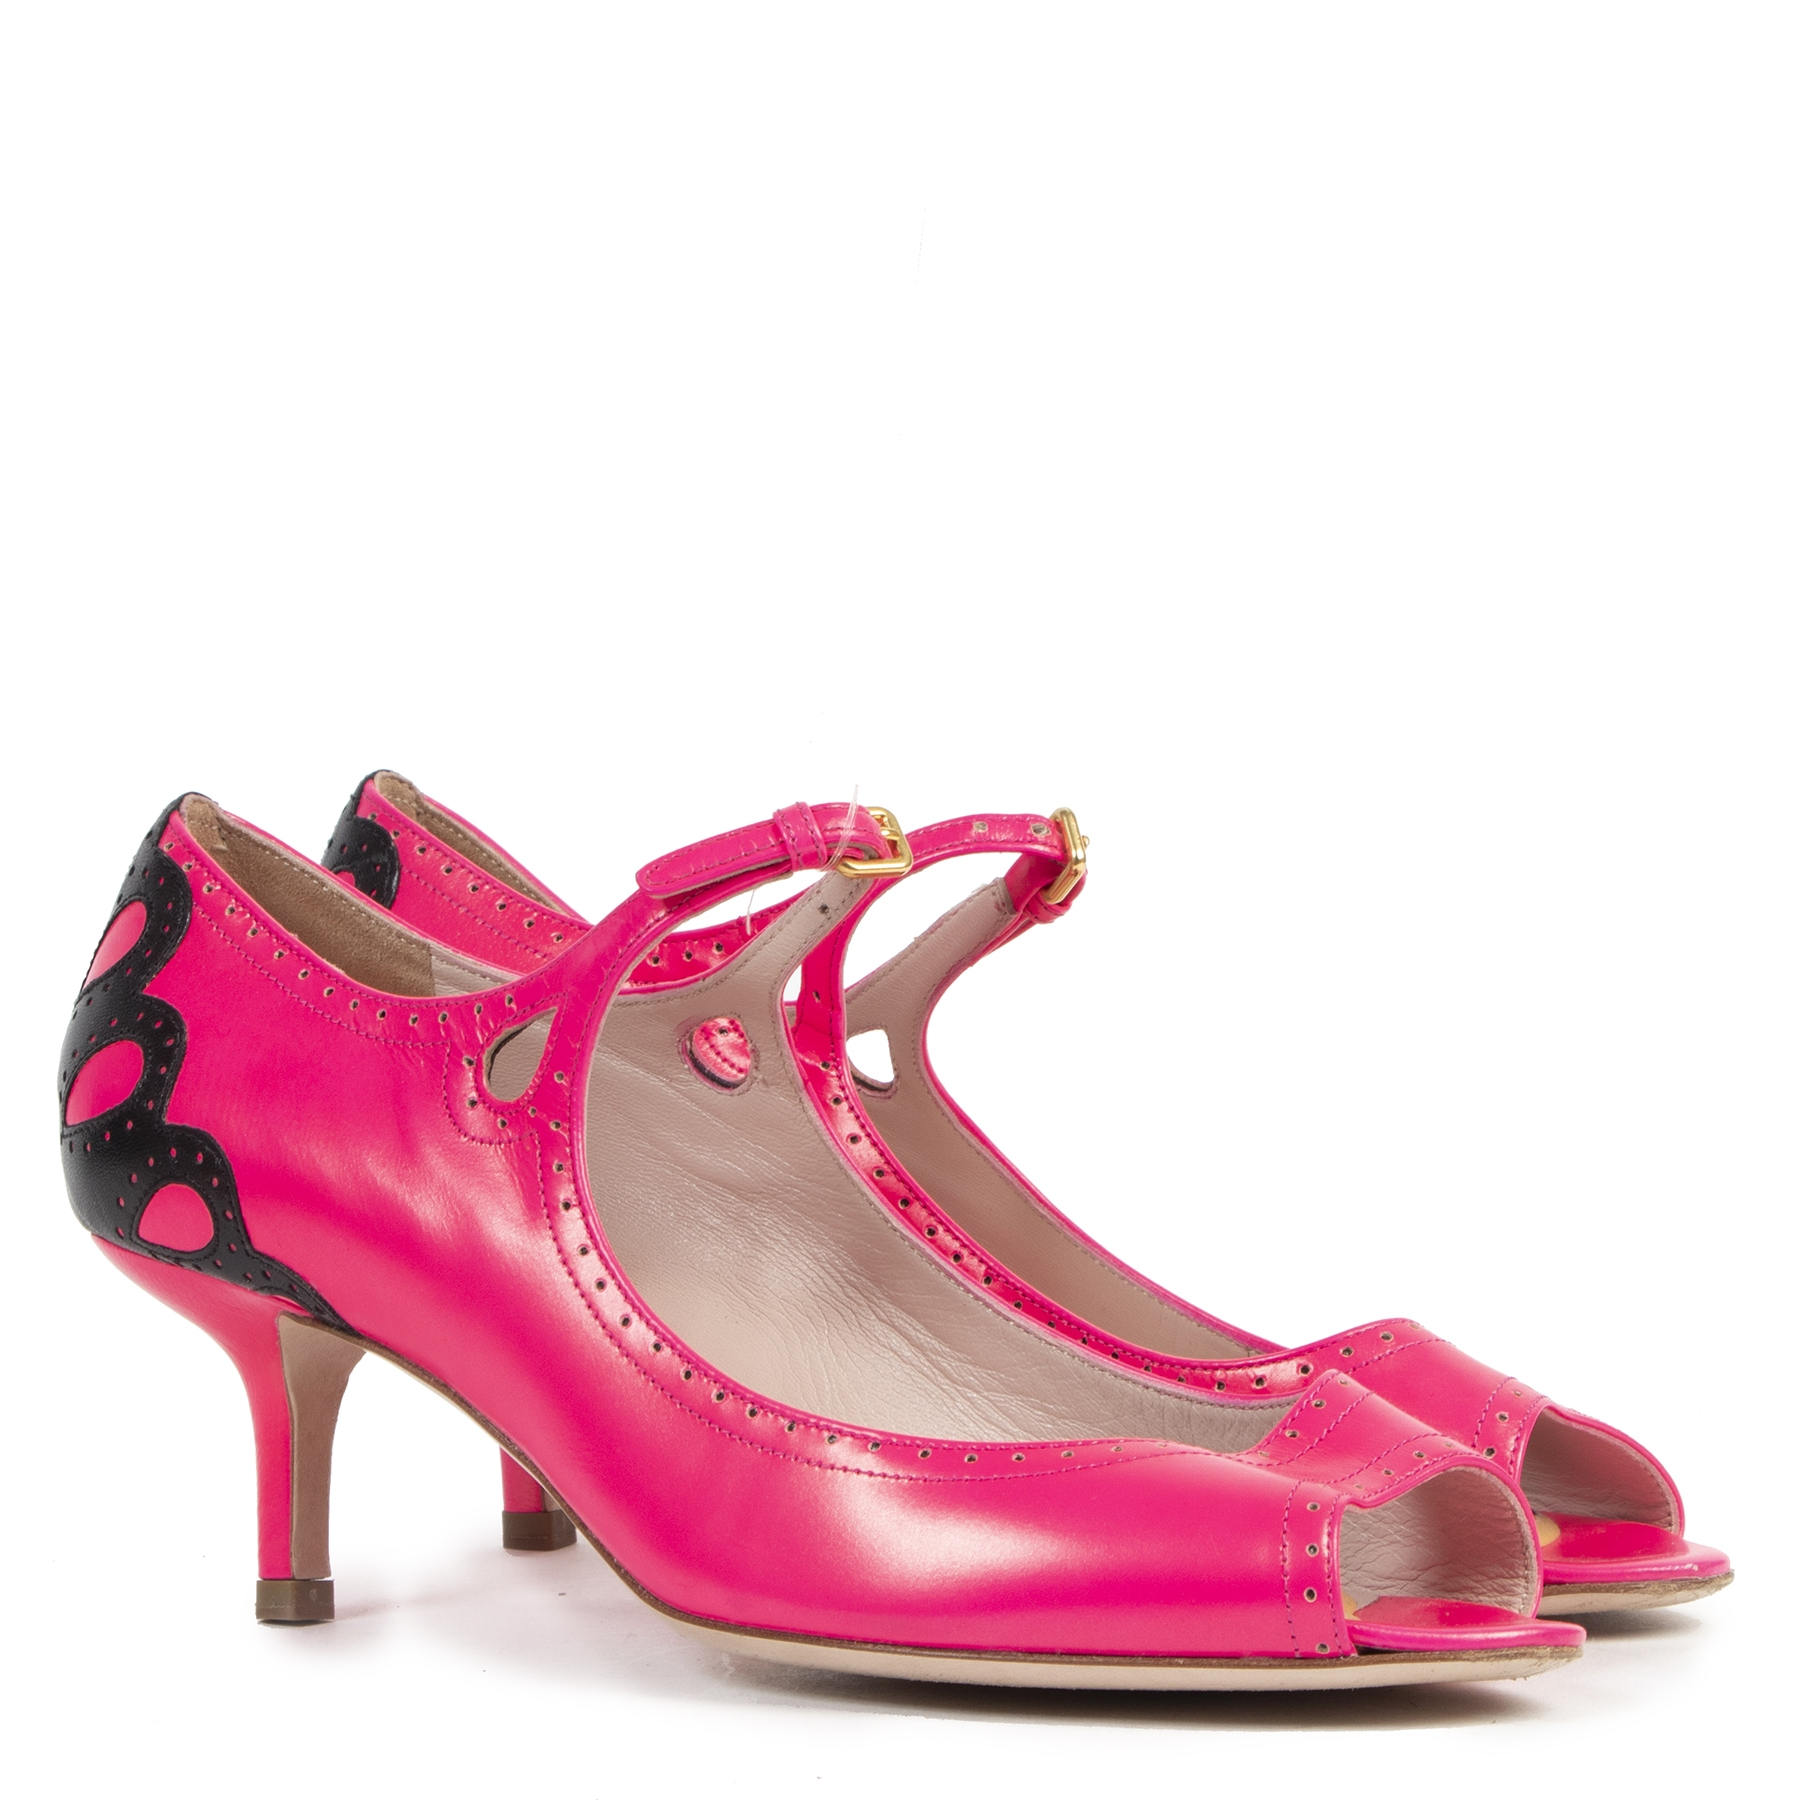 Authentic secondhand Miu Miu Pink Open Toe Kitten Heels - Size 39 designer shoes fashion luxury vintage webshop safe secure online shopping